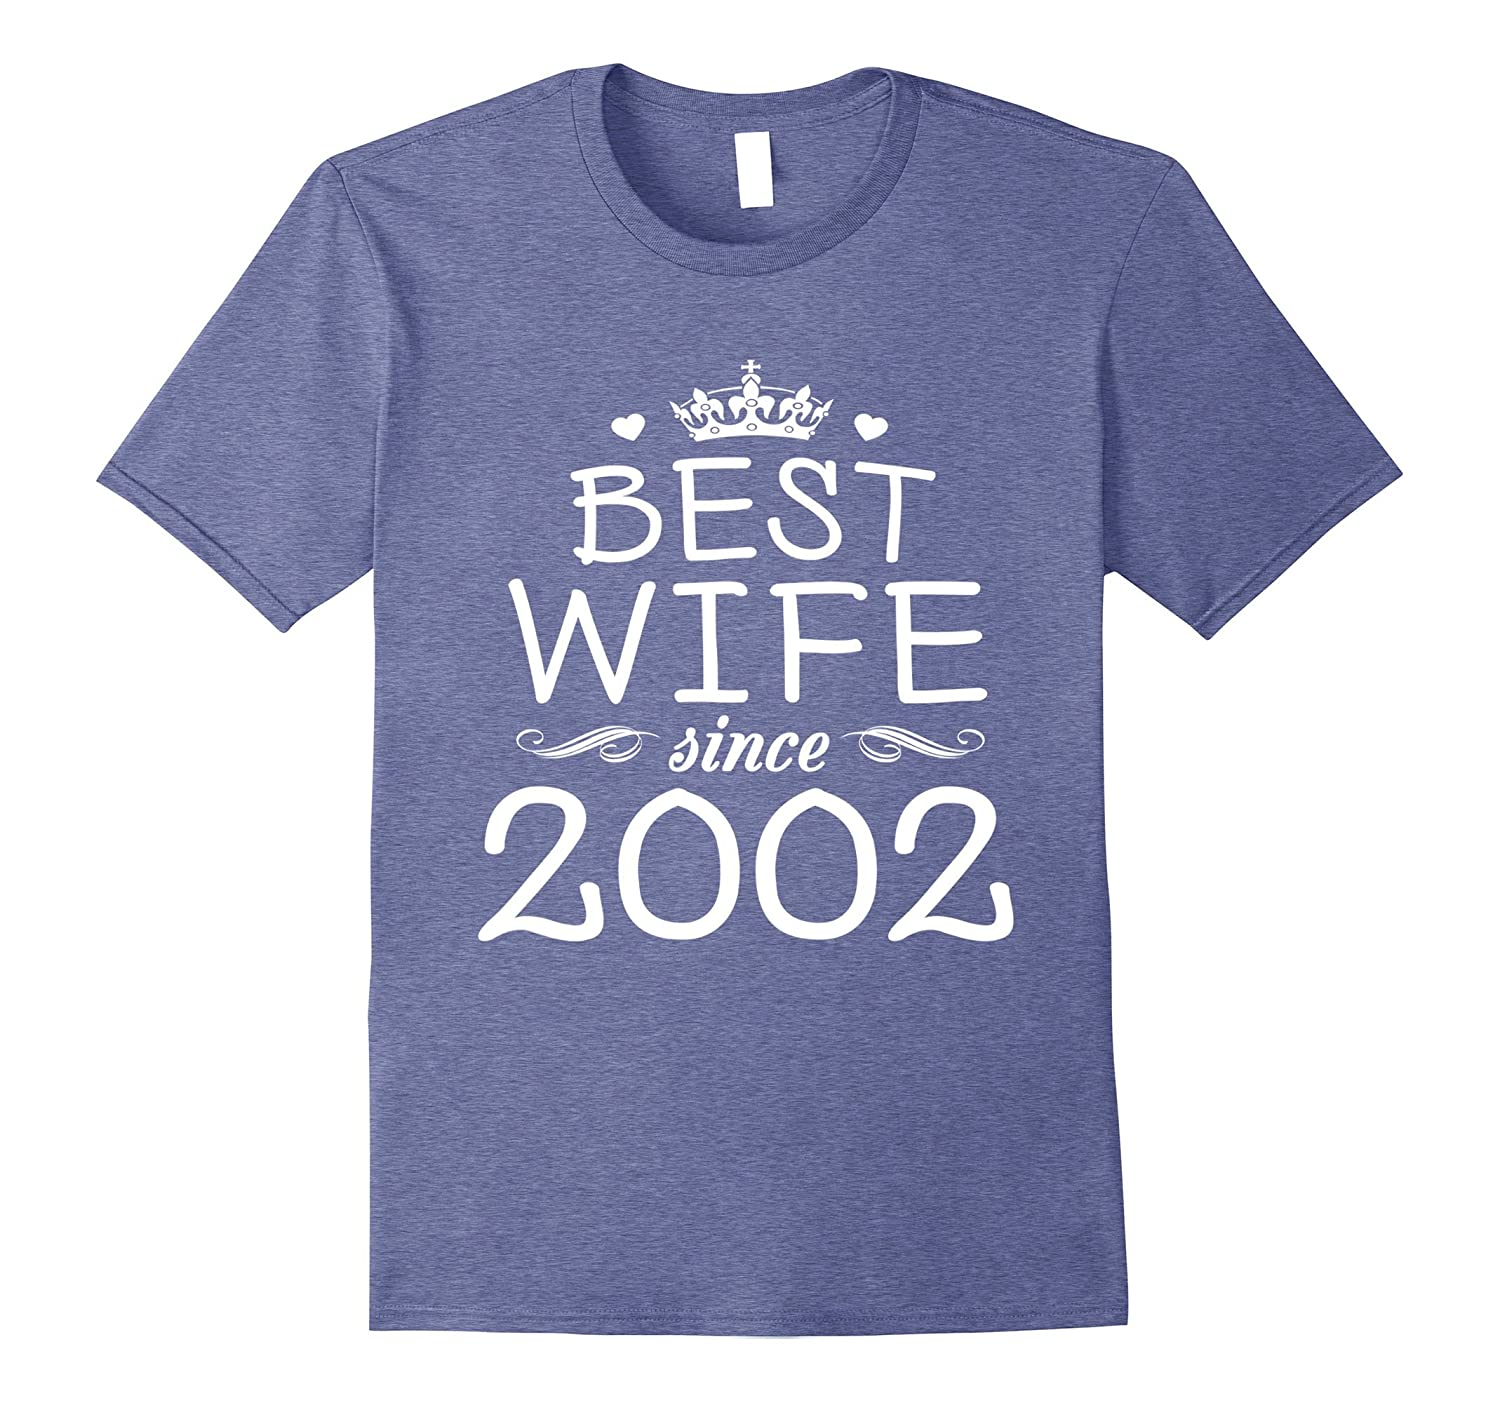 15th Wedding Anniversary Gift Ideas For Her-Wife Since